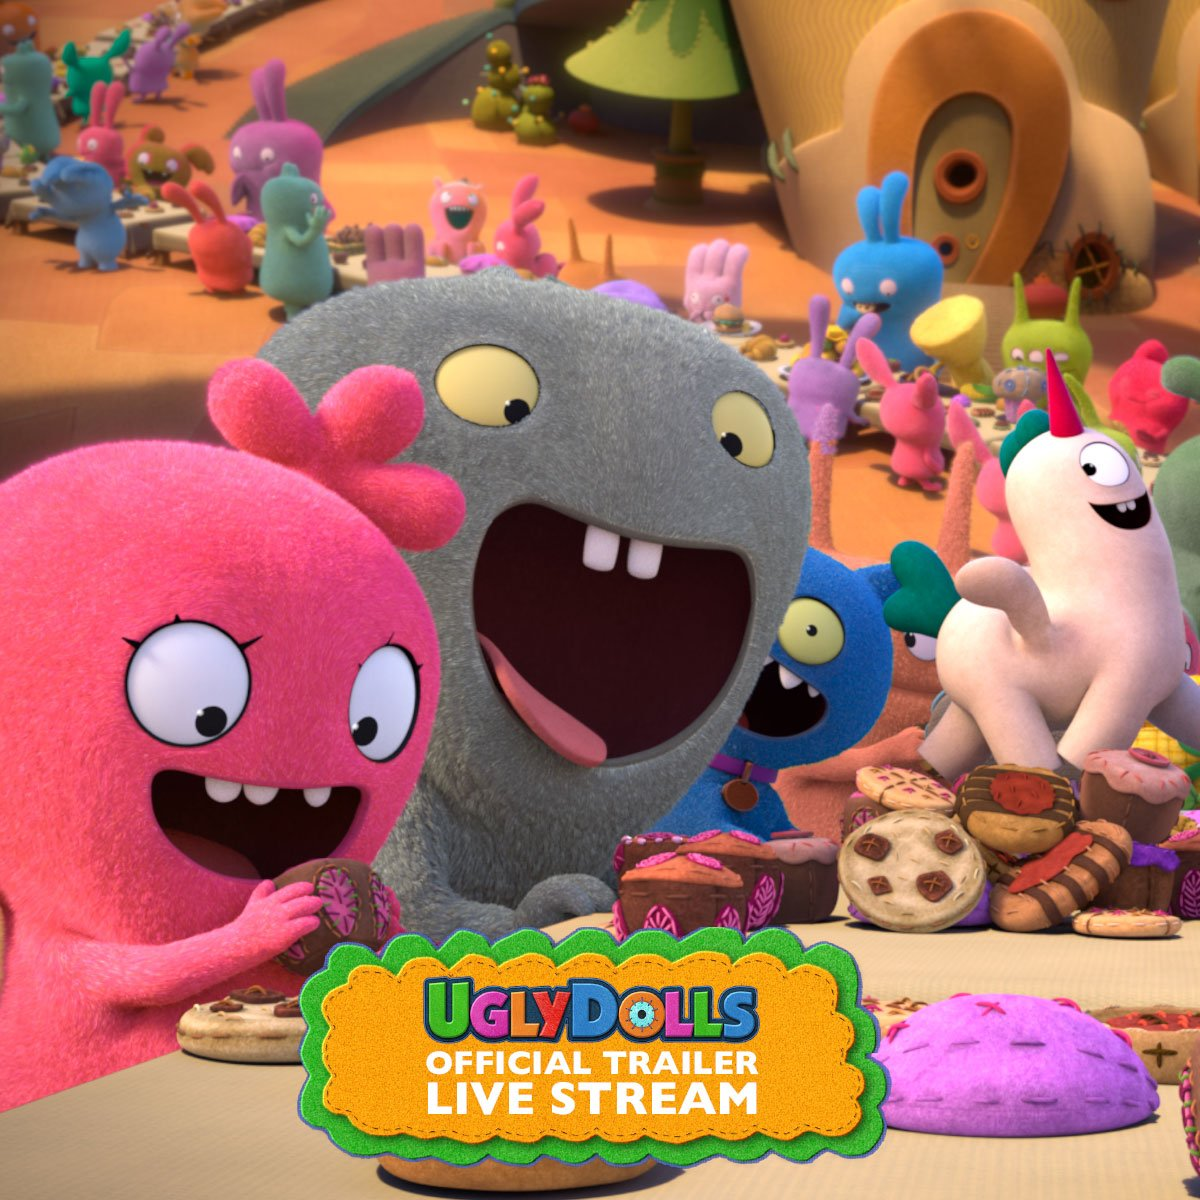 And sew it begins! Watch the official trailer for @UglyDolls - in theaters May 2019. #UglyDollsMovie https://t.co/Gfq0qLiXyG